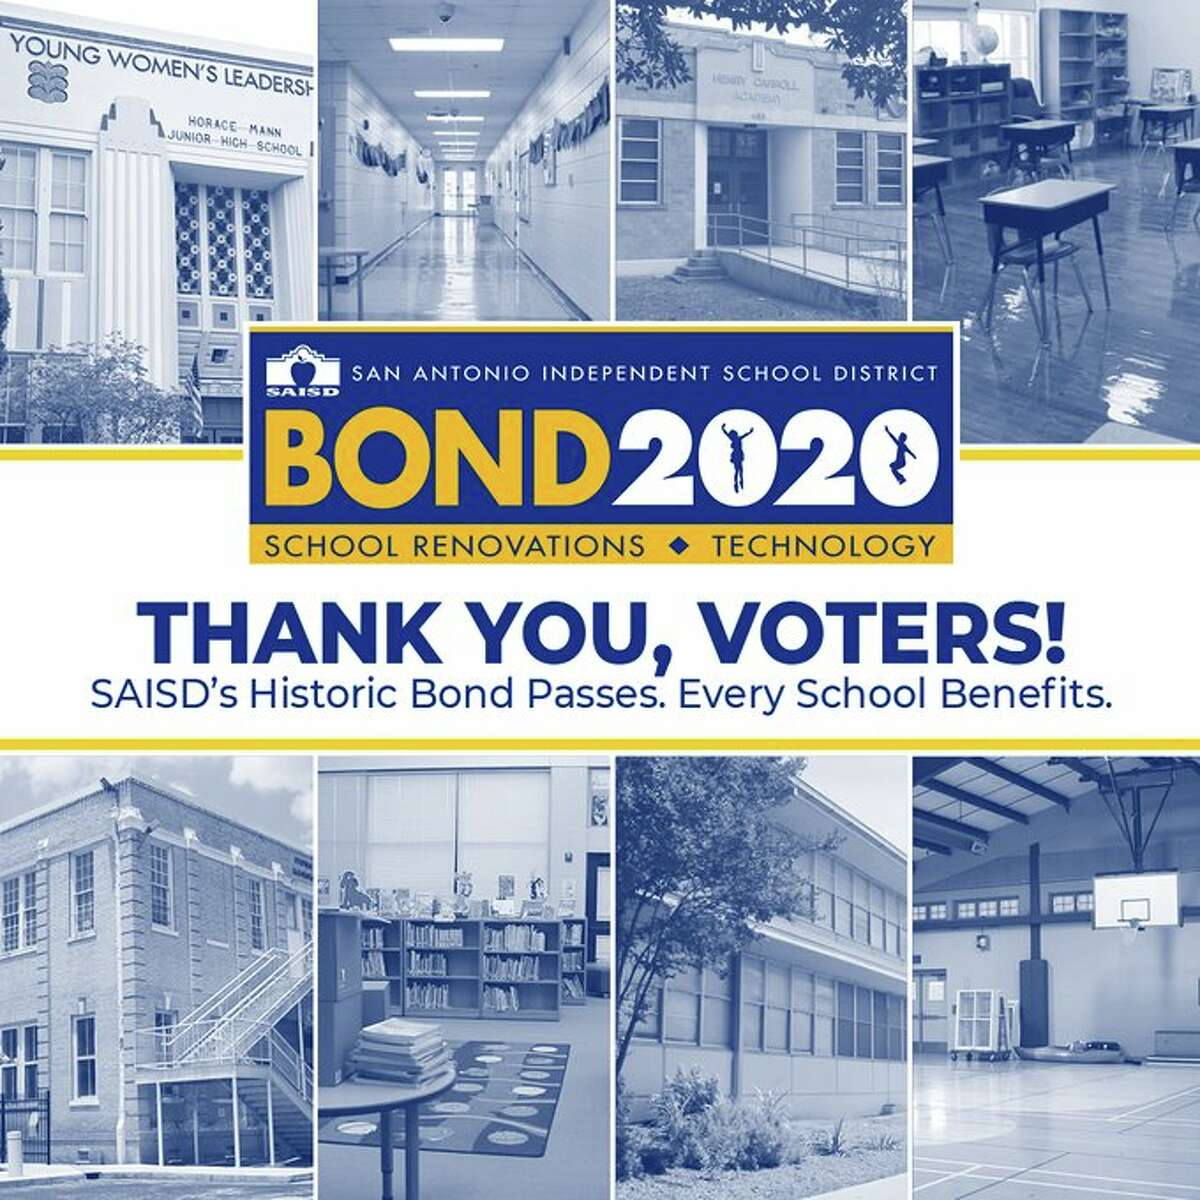 """""""A huge thank you to San Antonio voters who said 'Yes' on the SAISD Bond election Props A and B! With this support, every single school in our District will benefit, whether it's updated classroom technology, new AC systems, upgraded security, or renovations,"""" the district shared Tuesday night."""